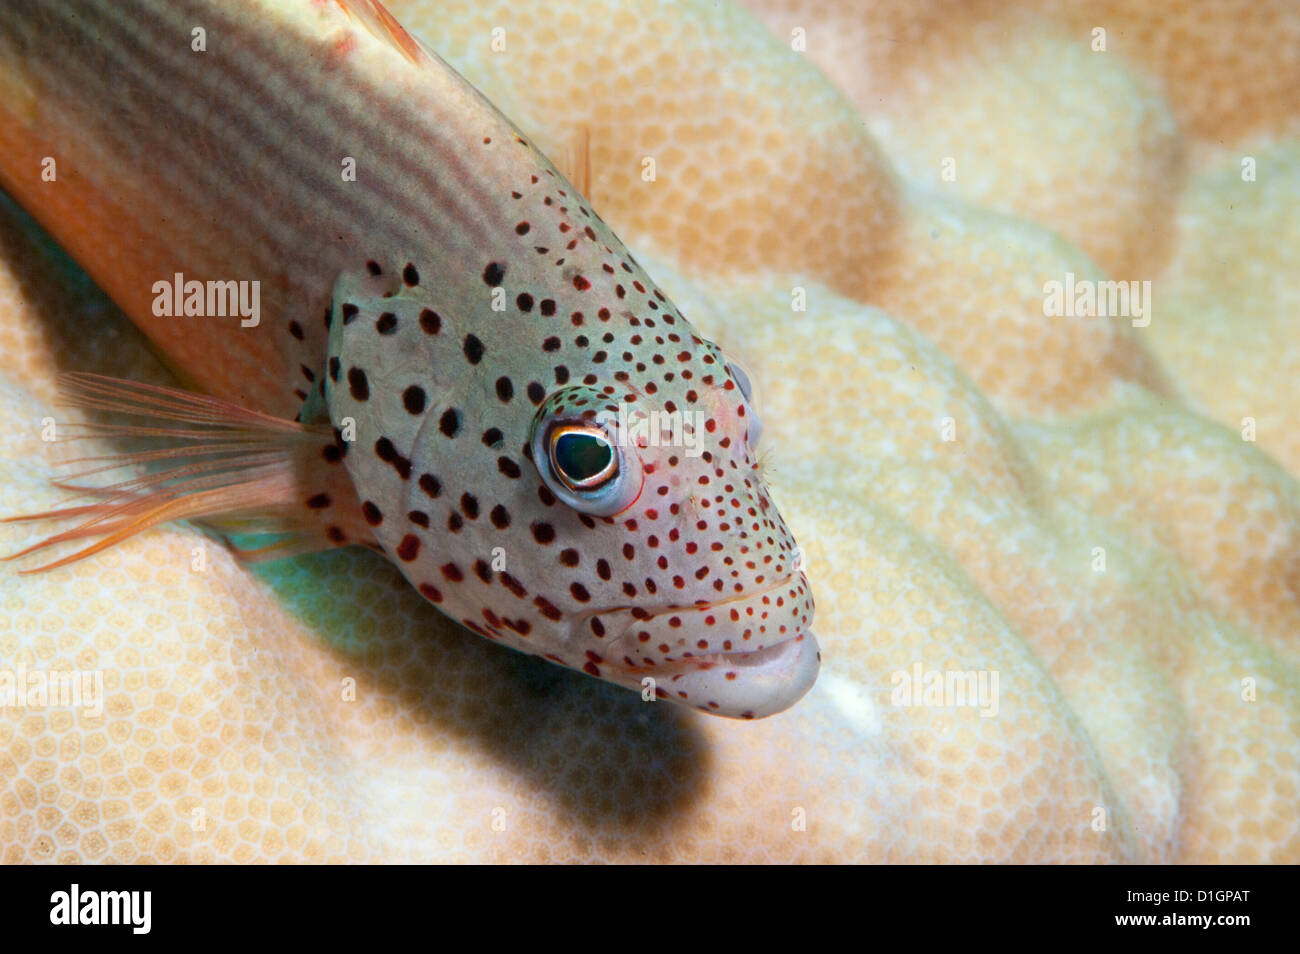 Freckled grouper (Cephalopholis microprion), Sulawesi, Indonesia, Southeast Asia, Asia - Stock Image